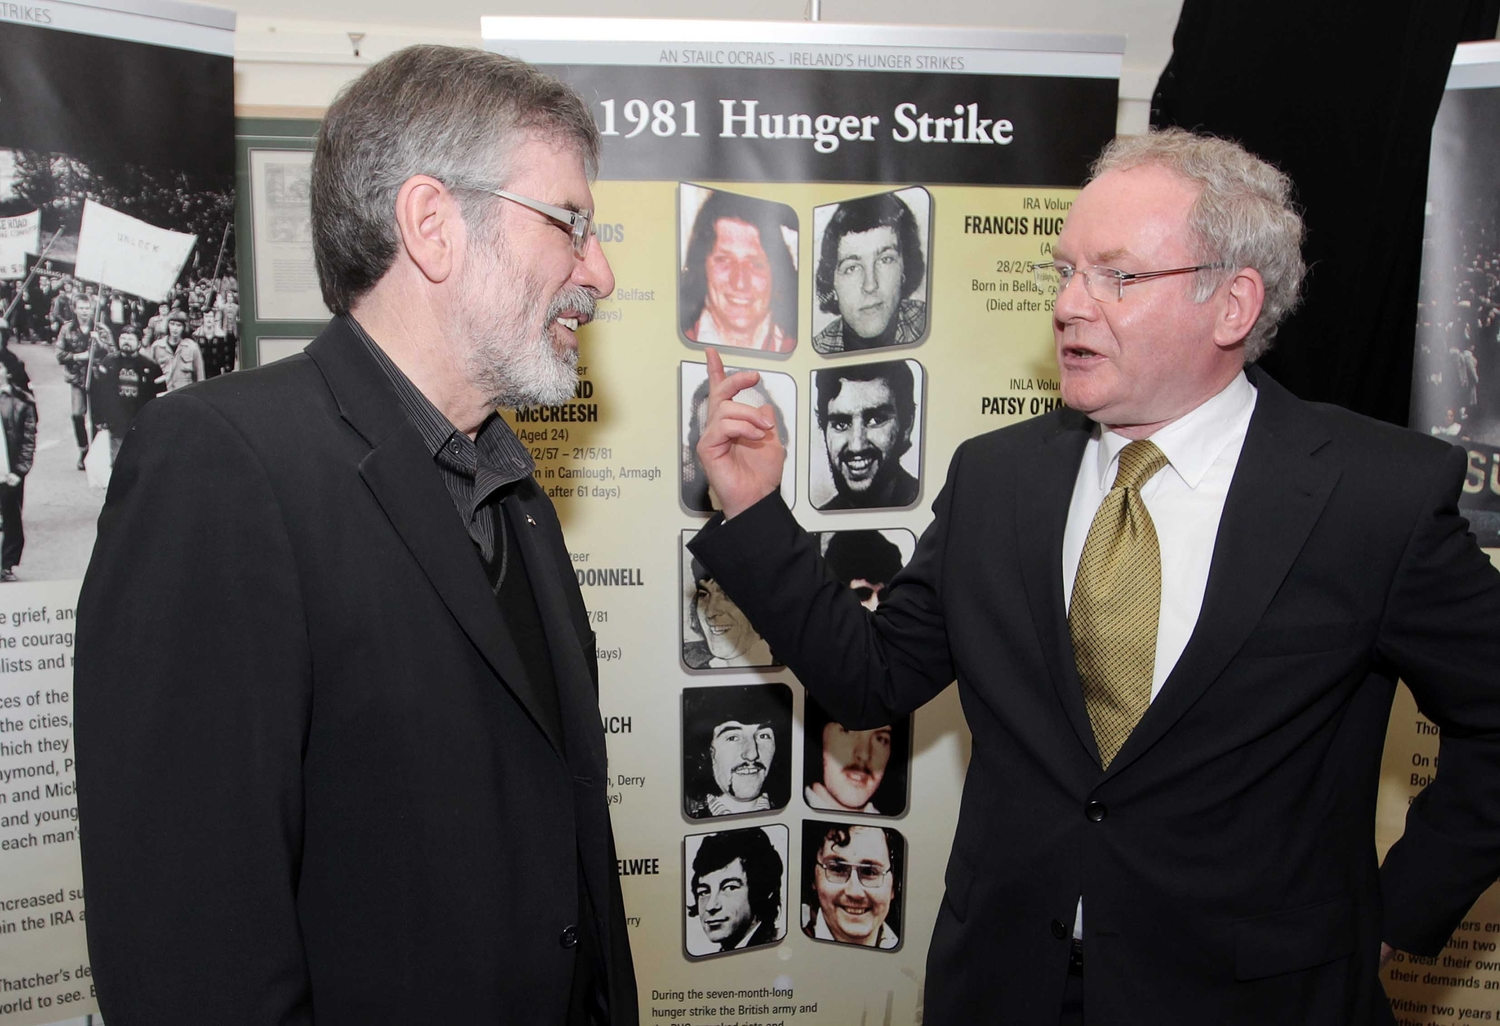 Gerry Adams and Martin McGuinness at a hunger strike exhibition